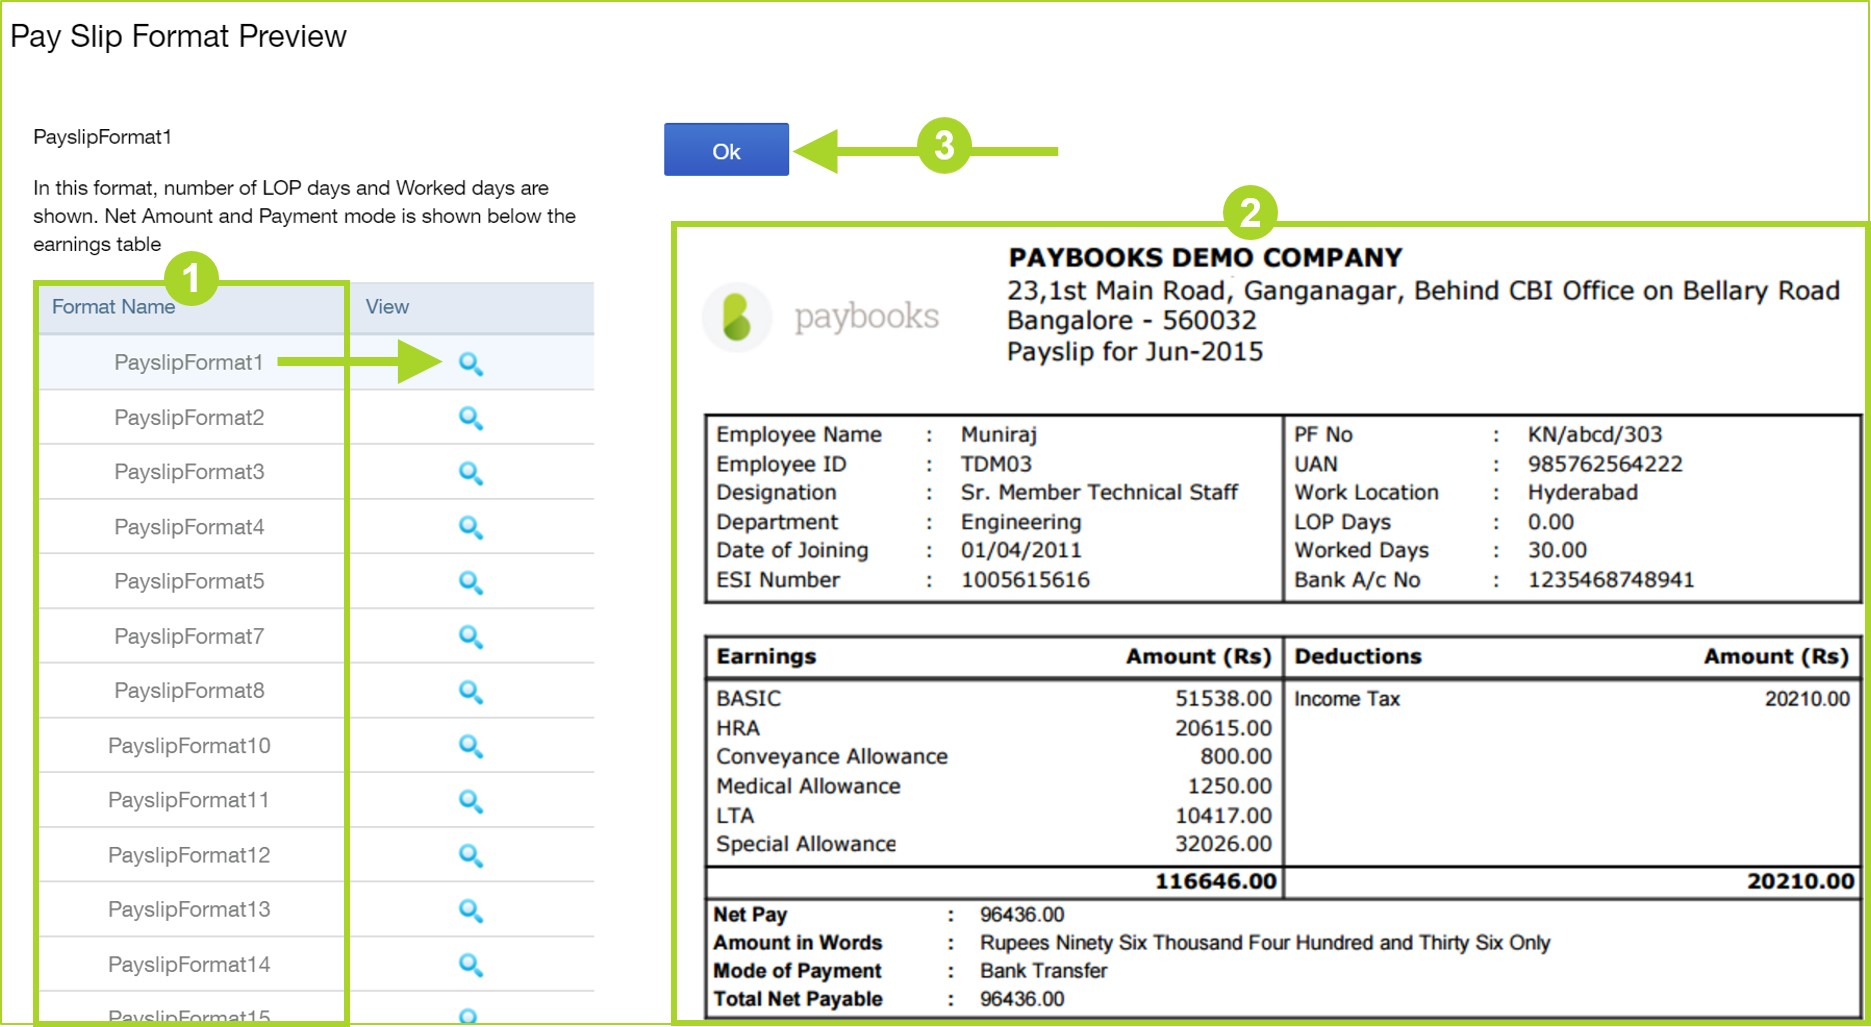 Exceptional How To Customize Format Of Pay Slips? On Payslip Formats